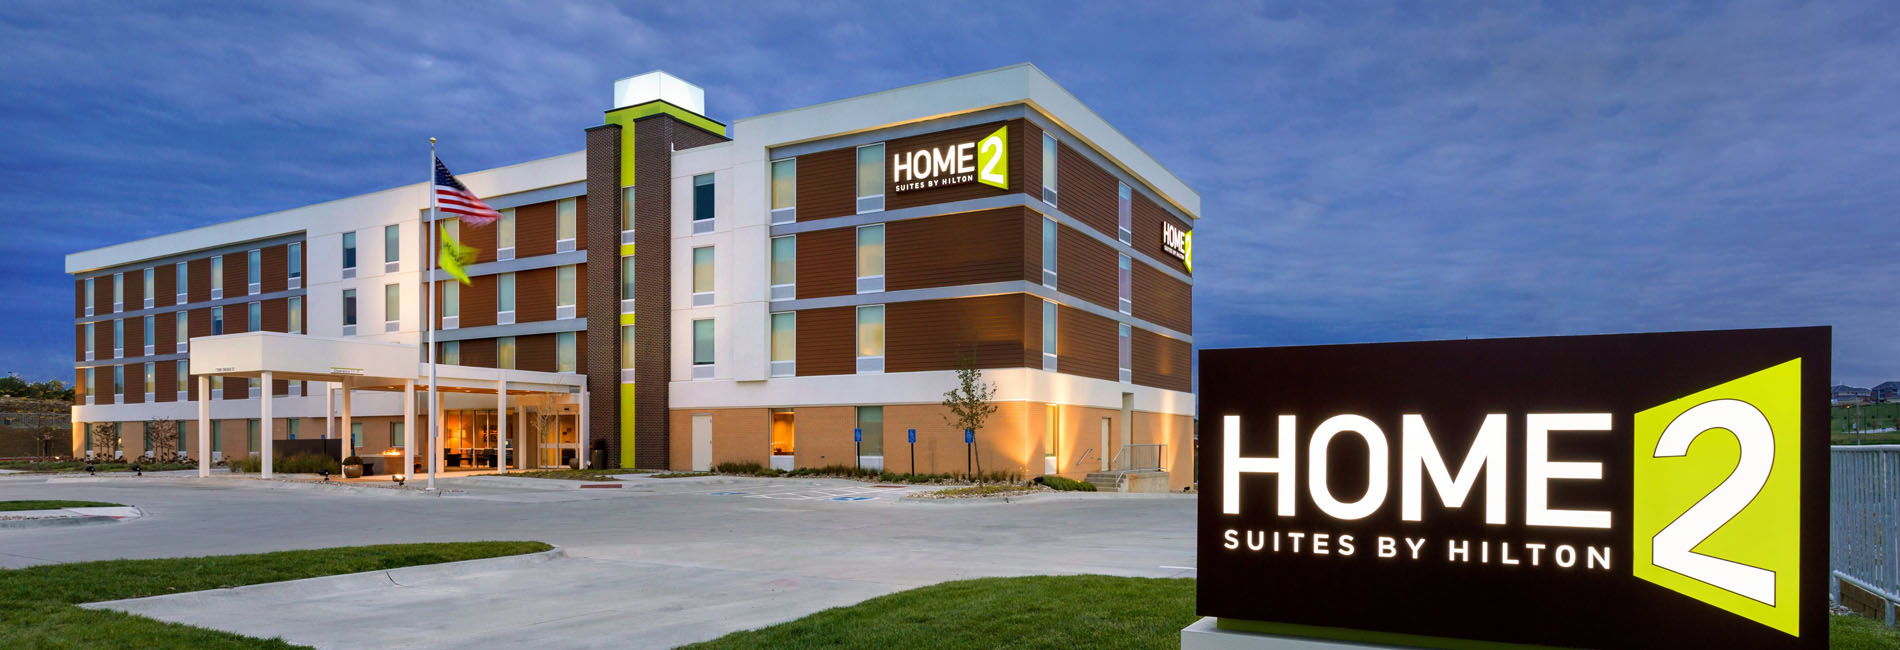 Home2 suites by hilton brookfield wi kinseth for Homes 2